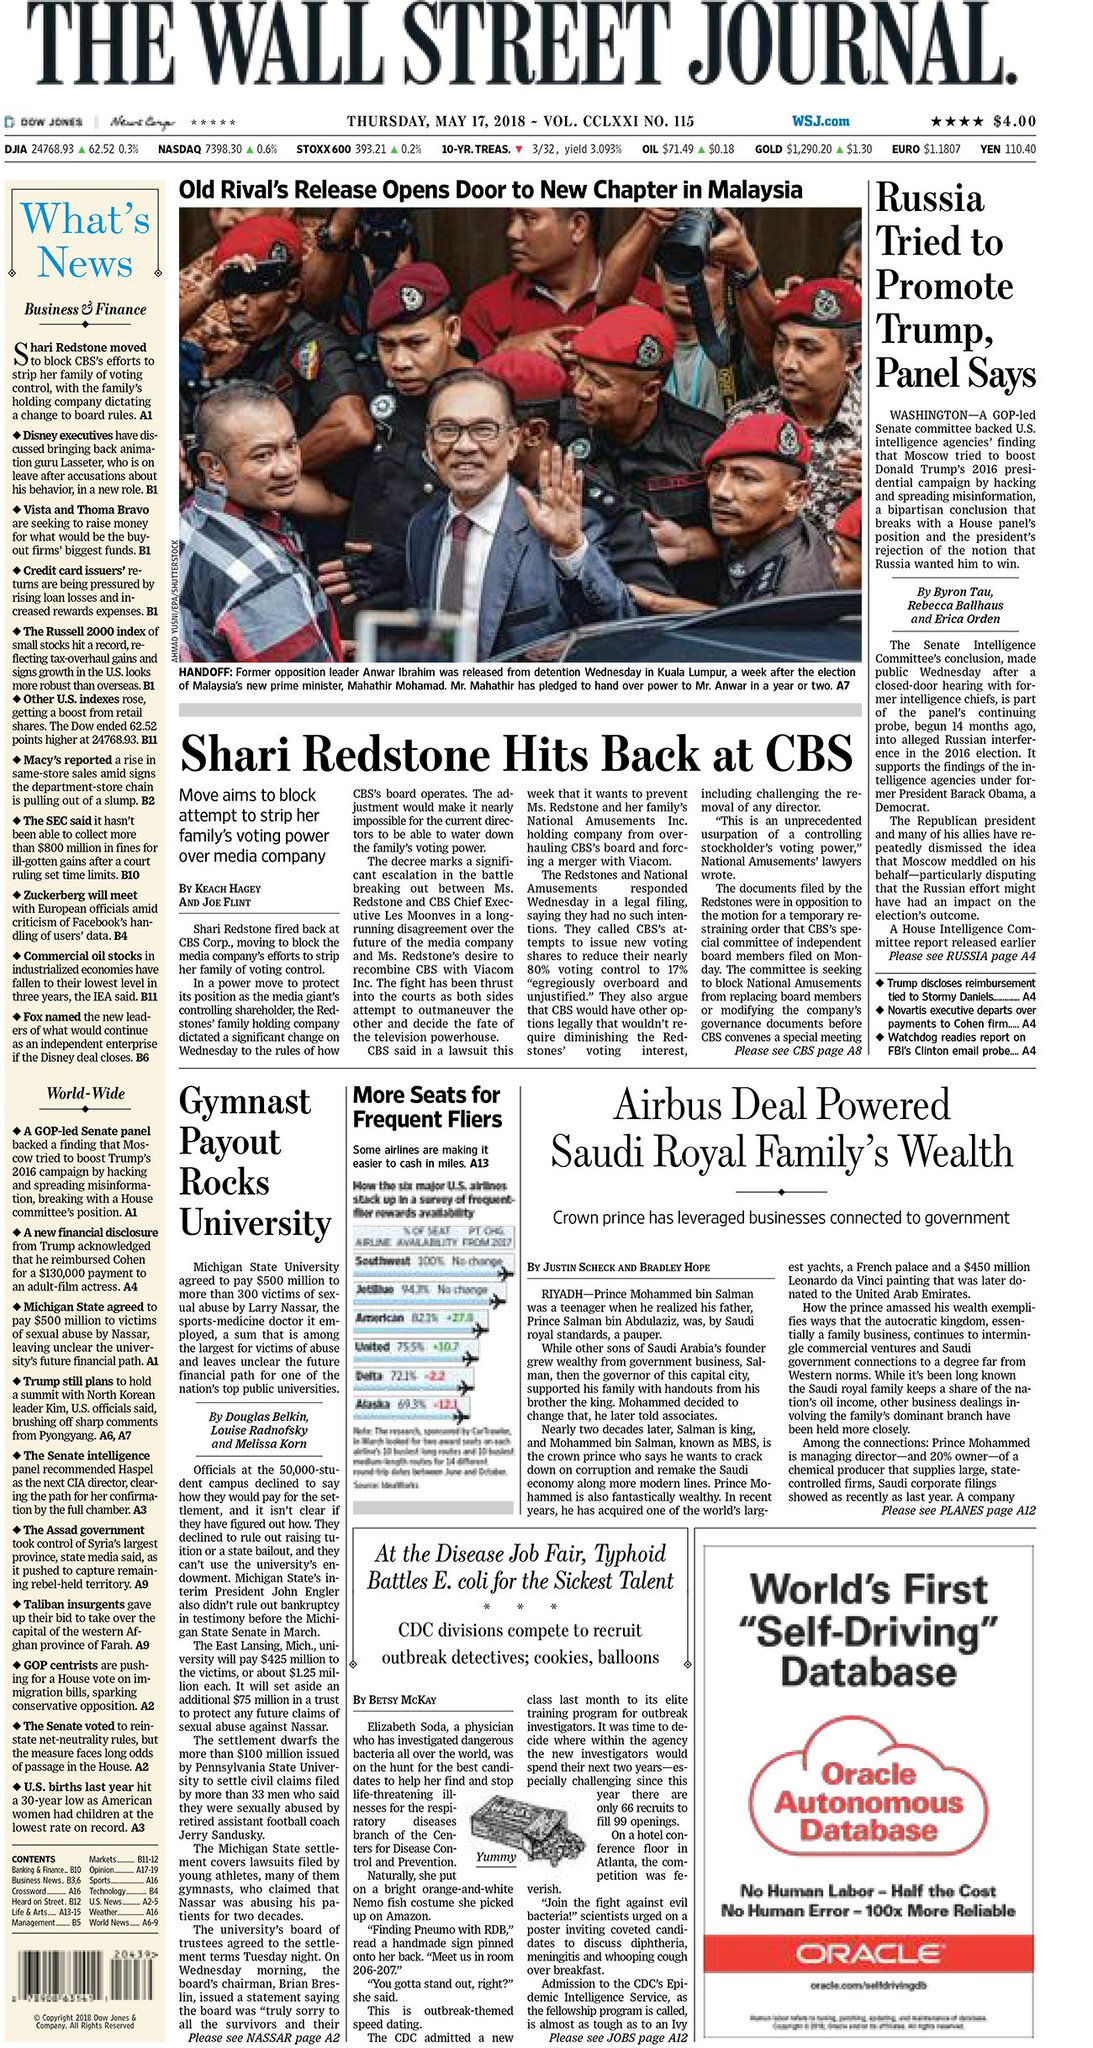 Take an early look at the front page of The Wall Street Journal https://t.co/5xQPDPcm8q https://t.co/M88fMCRFK4